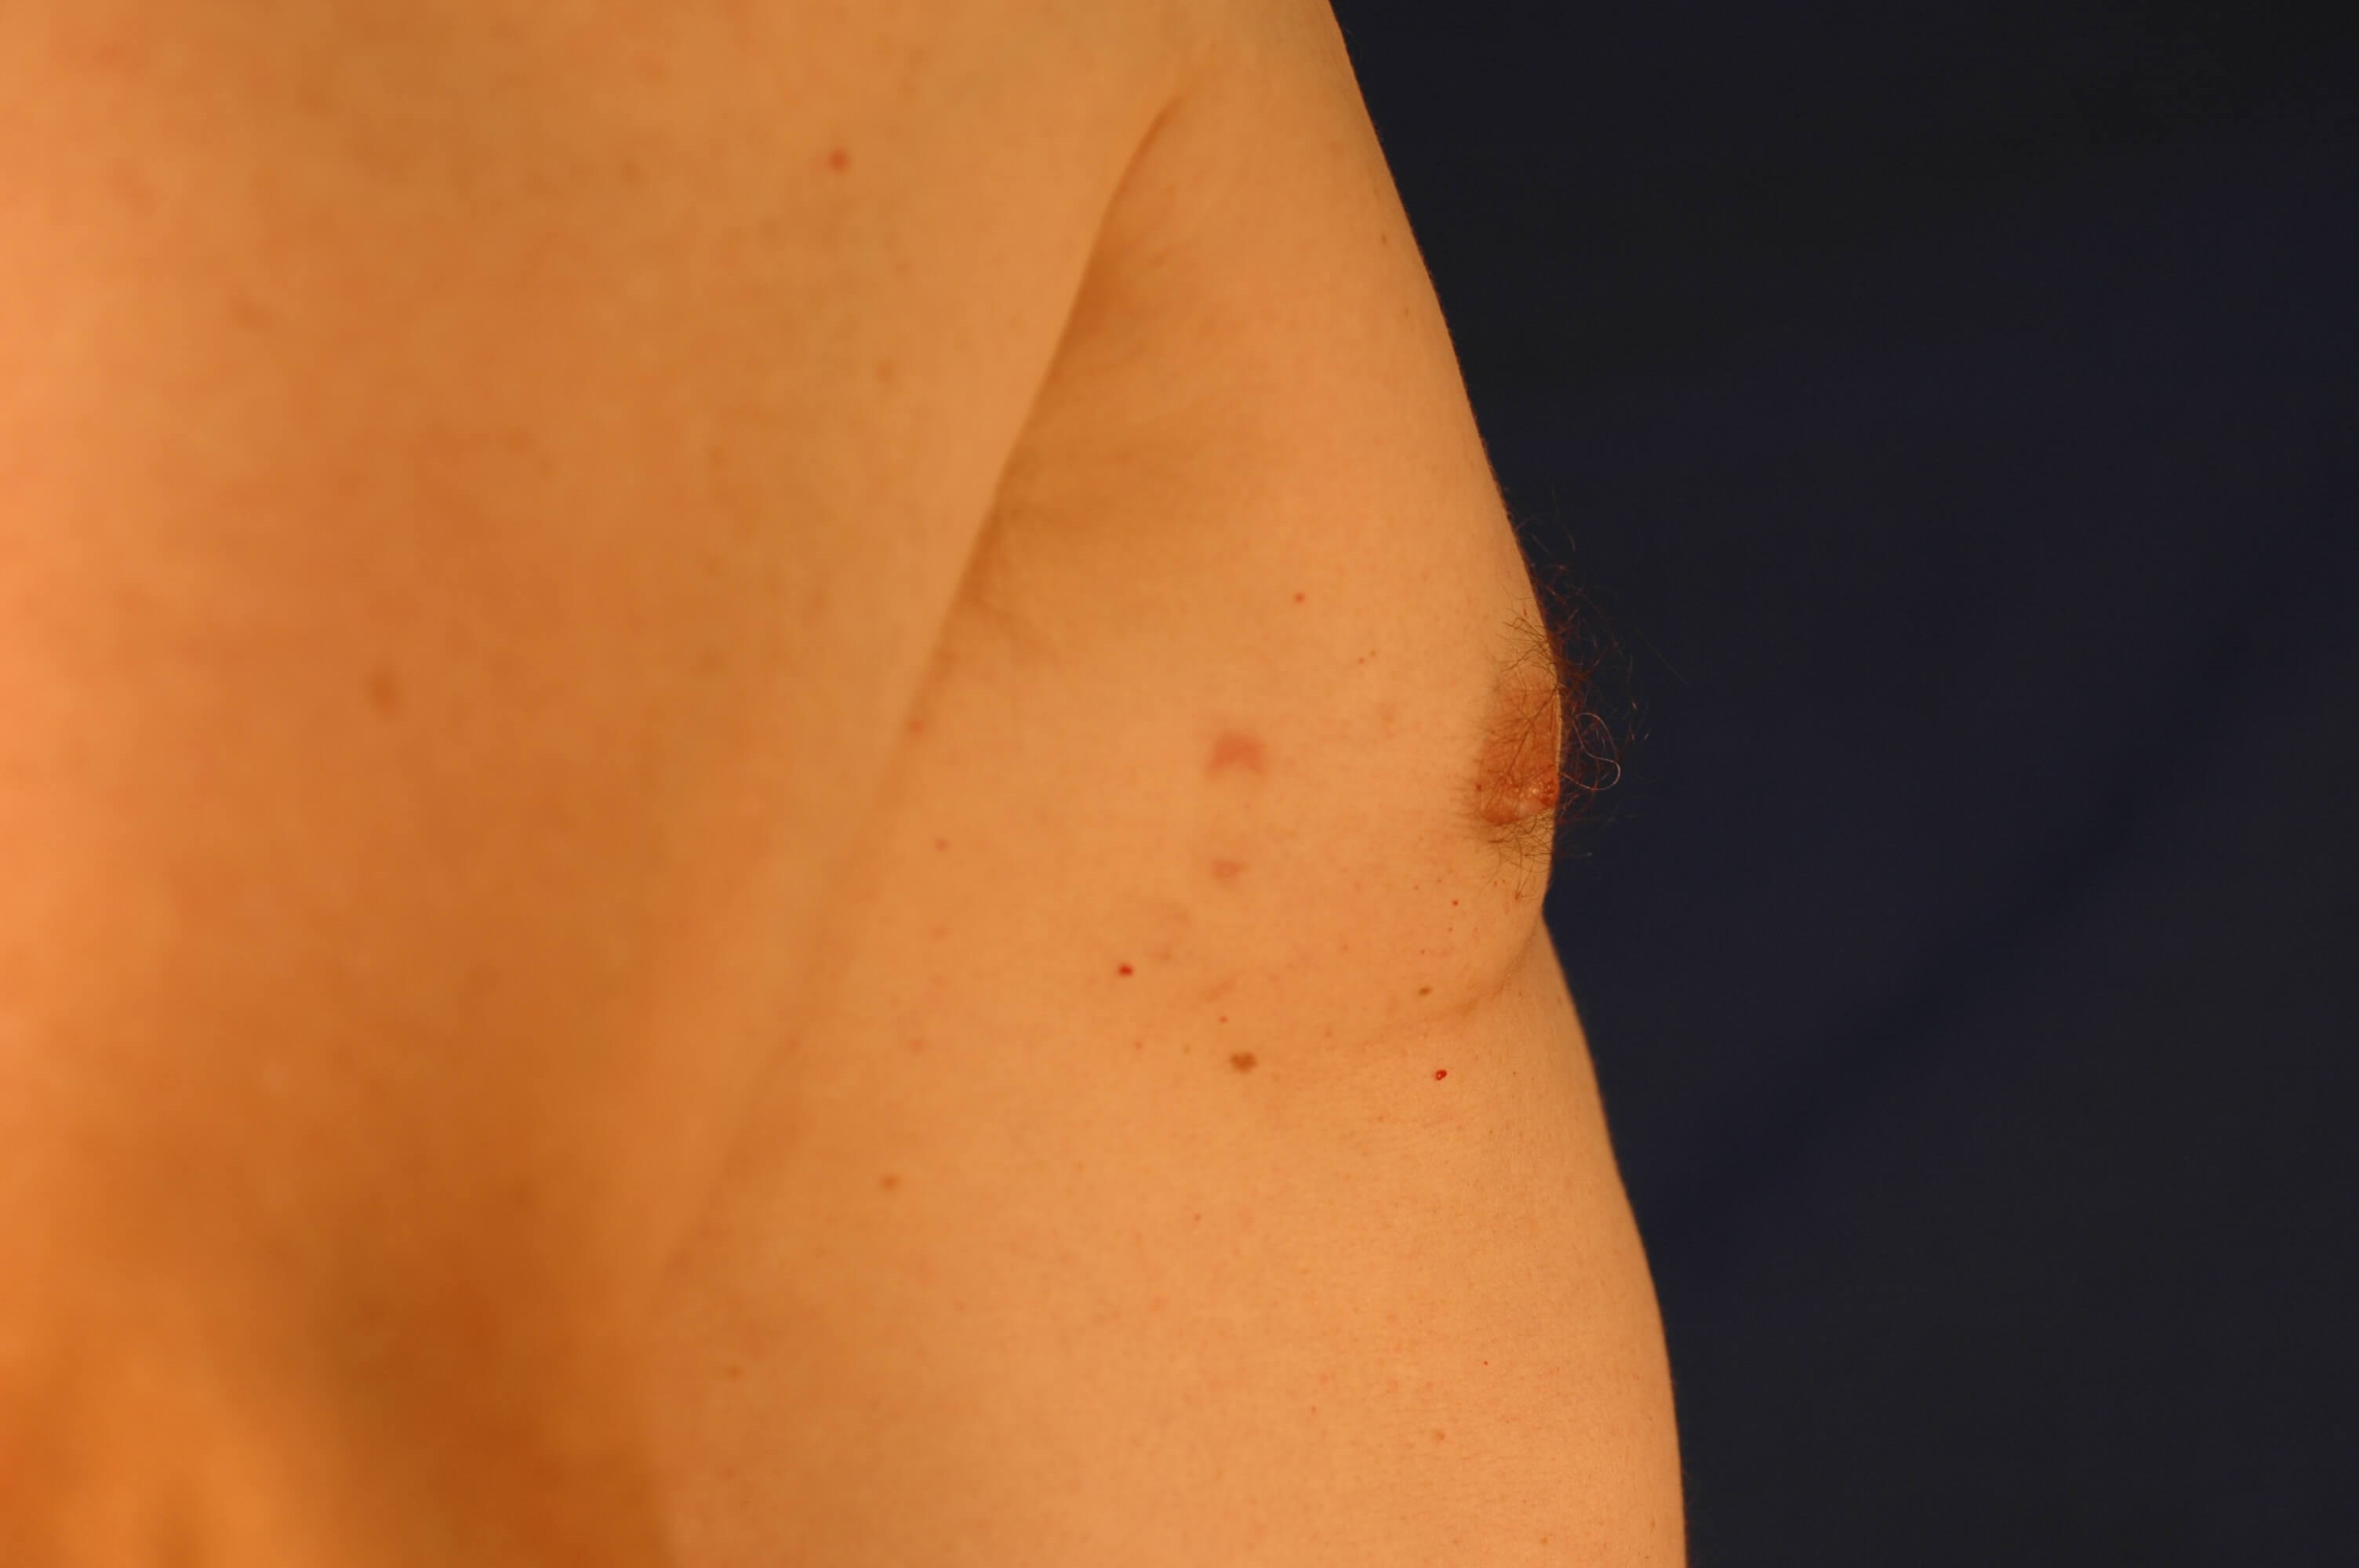 Newport Beach Gynecomastia Side View After